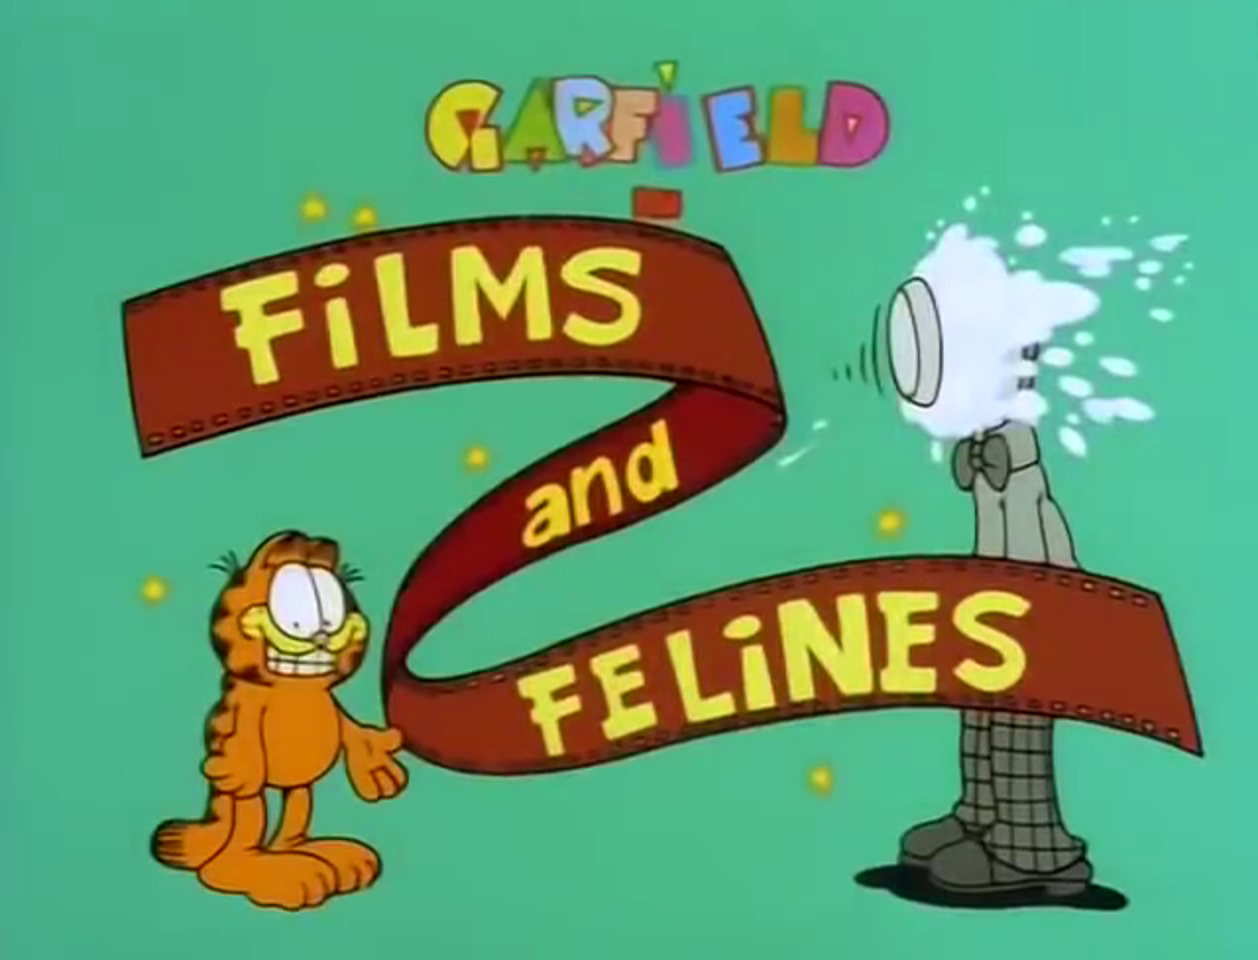 Films and Felines